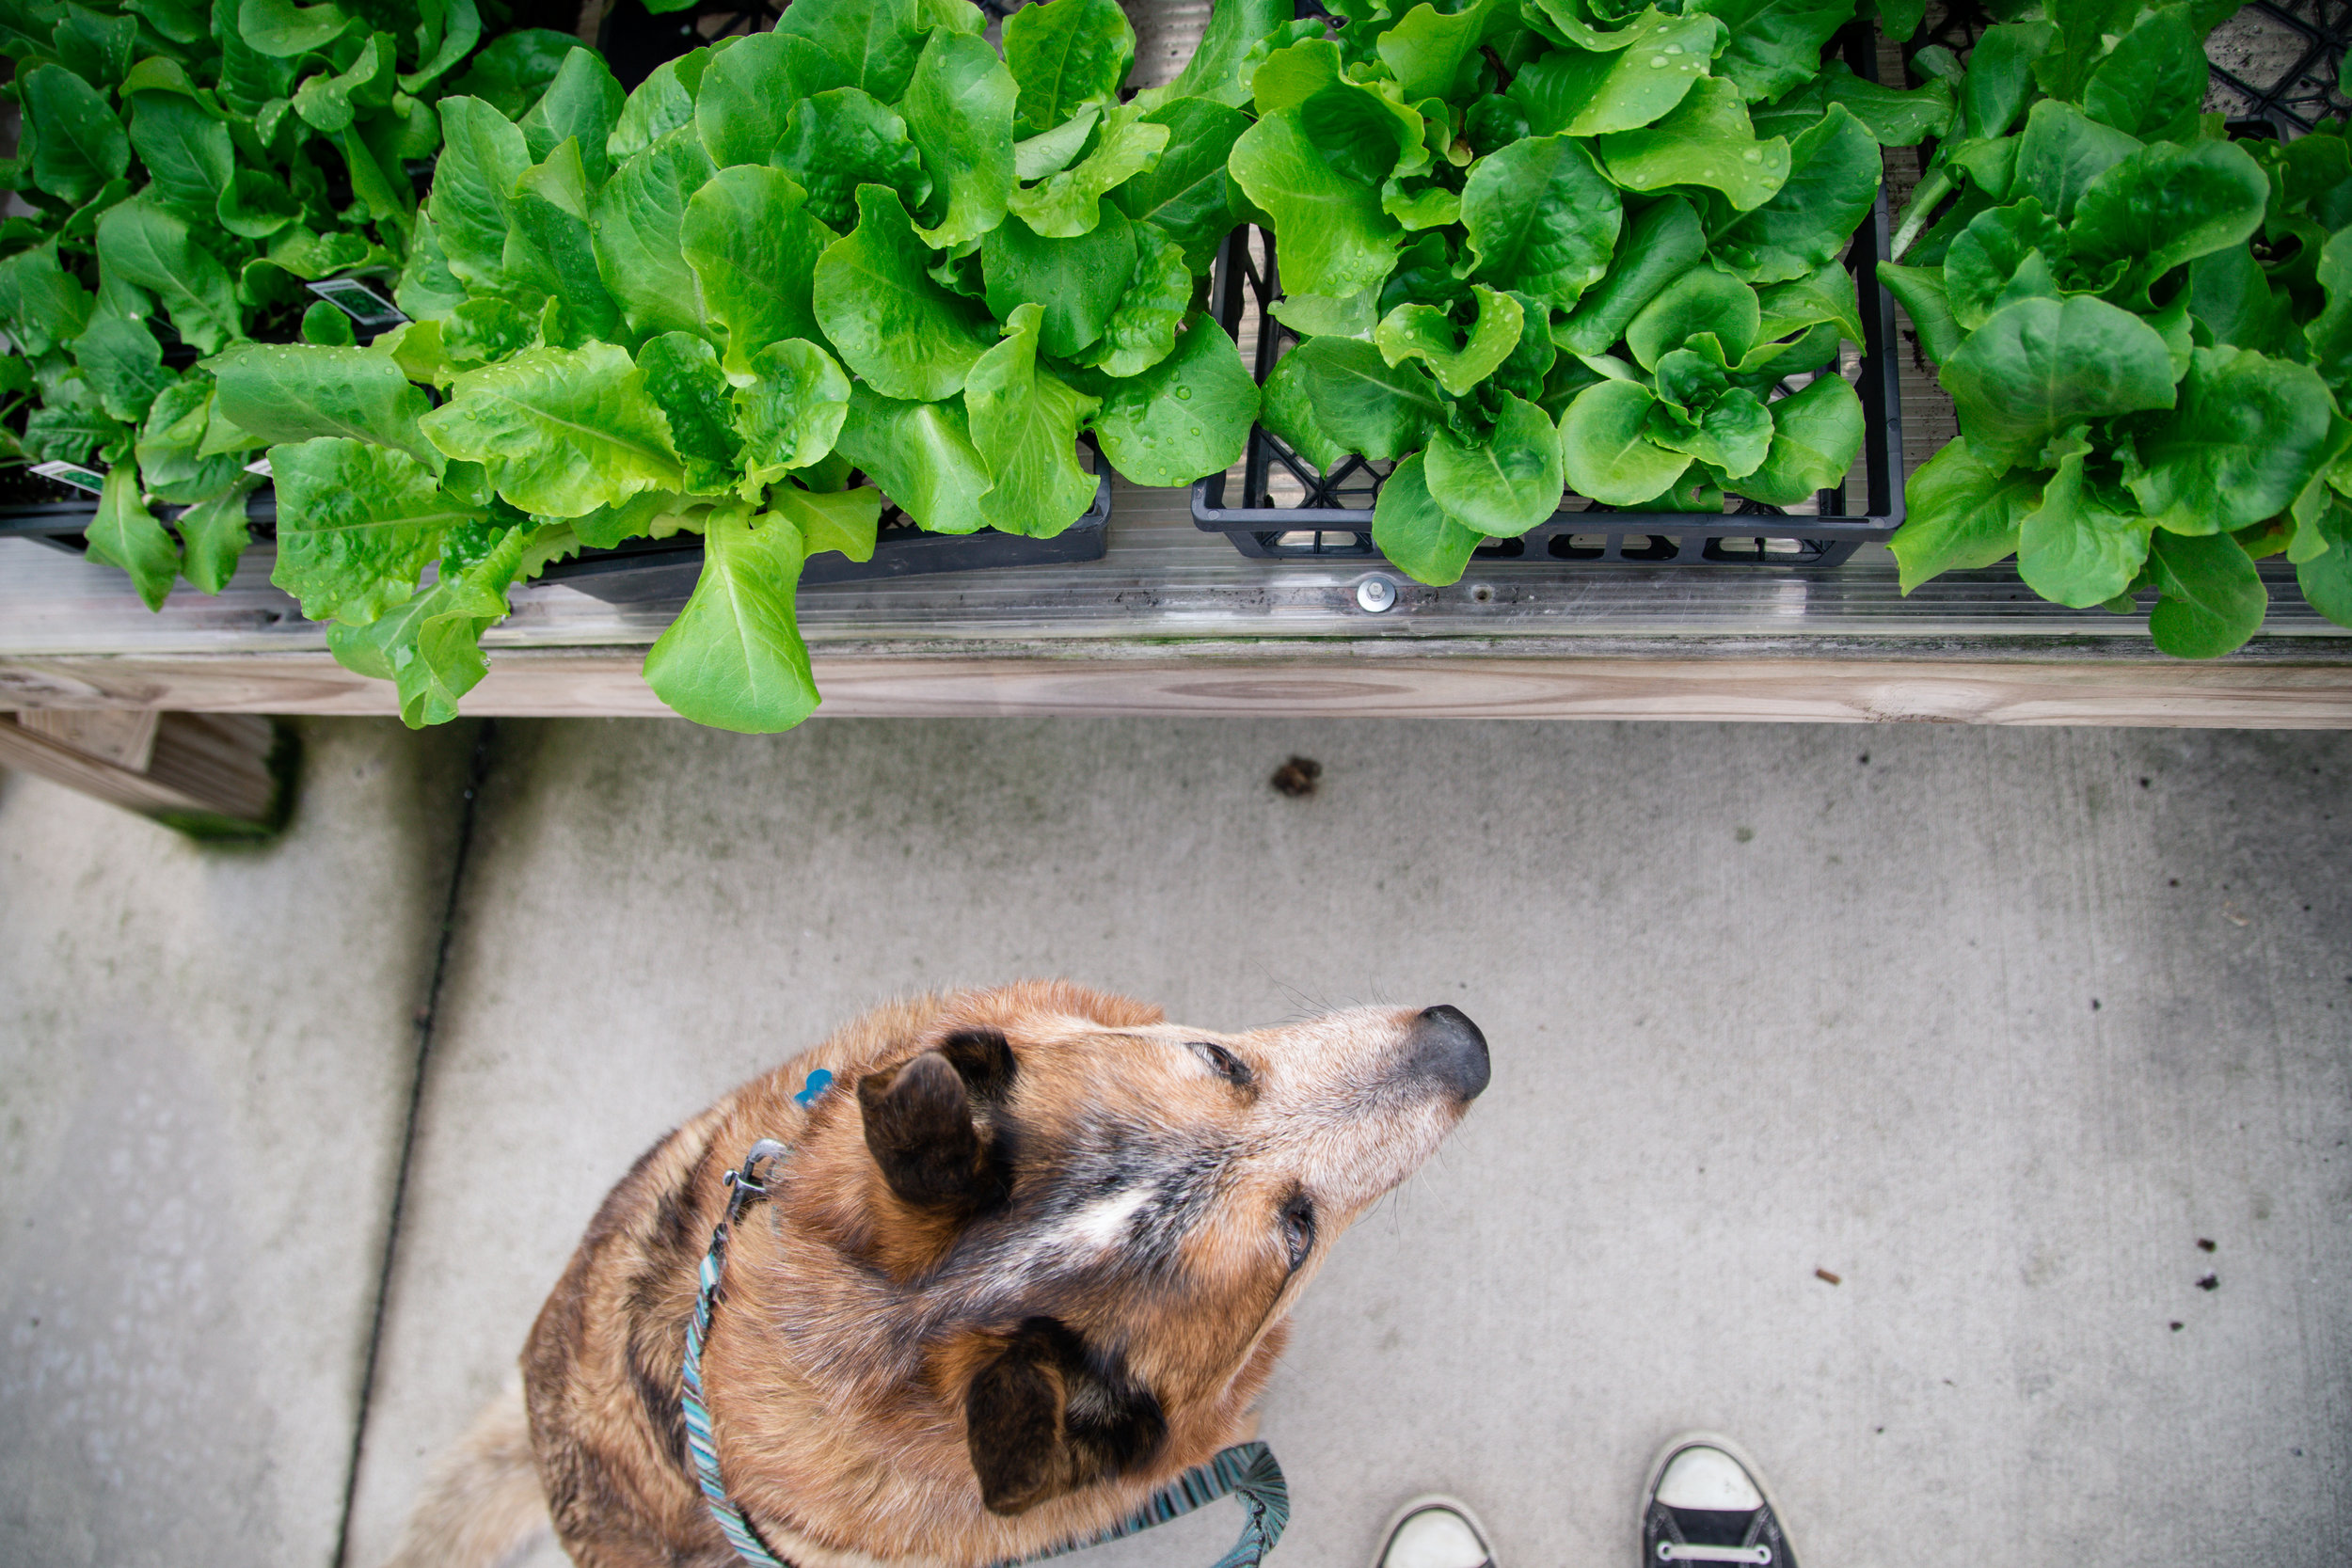 153 // 366 Greenhouse shopping with the pupper